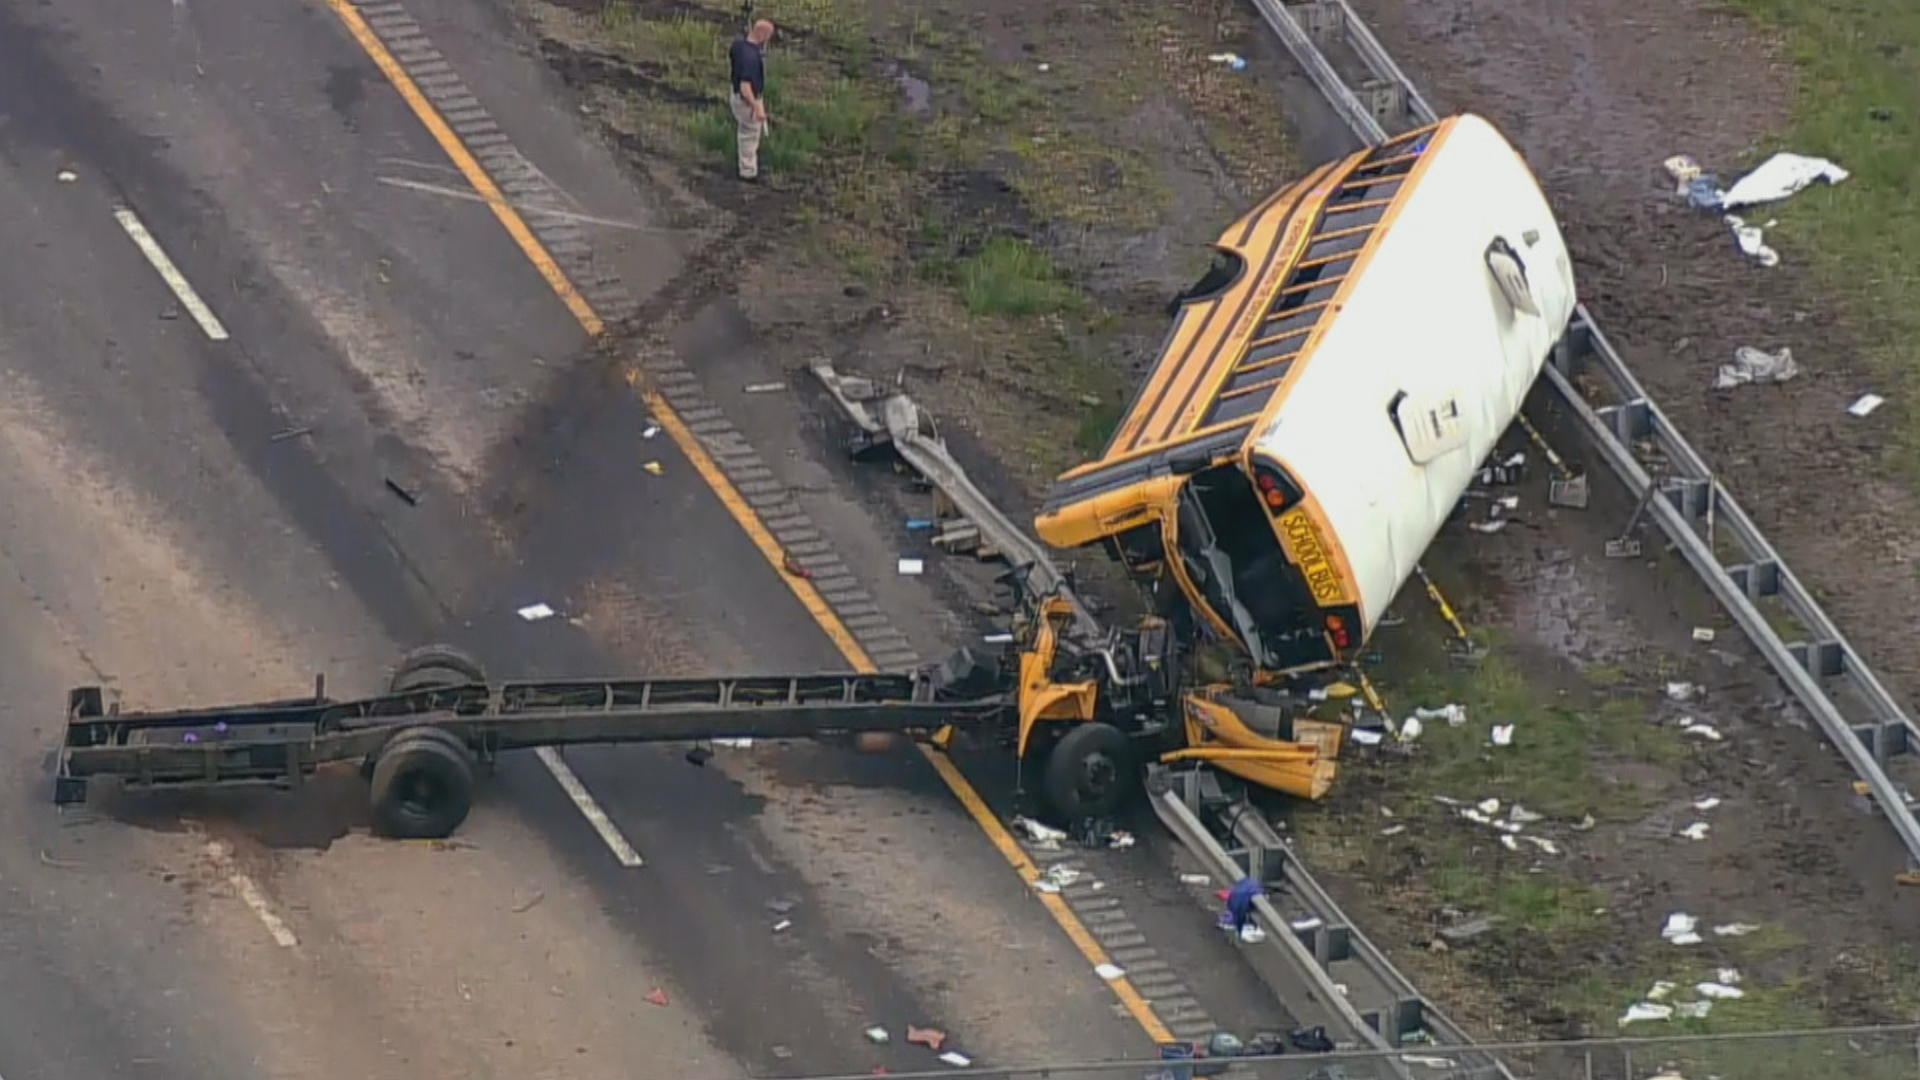 New Jersey school bus driver made illegal U-turn before